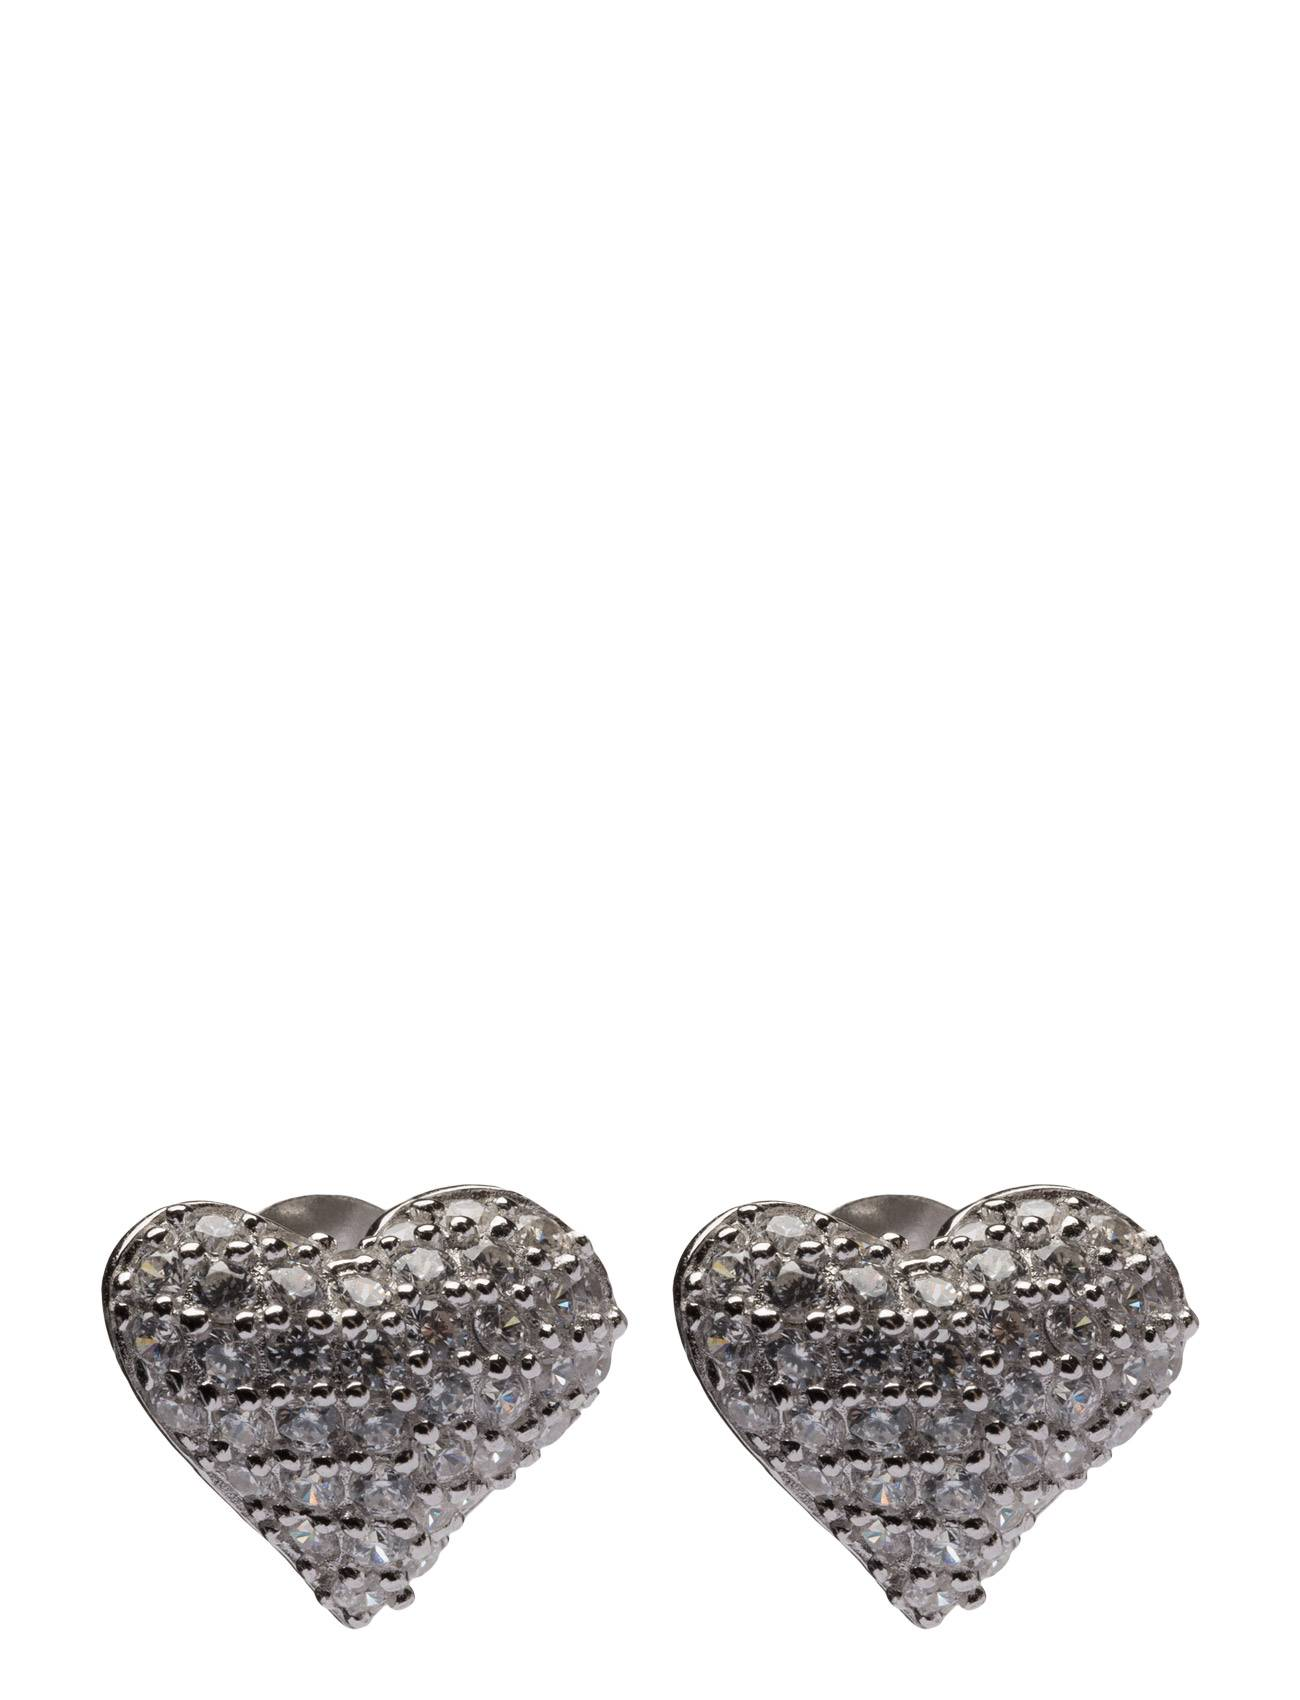 Sif Jakobs Jewellery Giglio Amore Piccolo Earrings